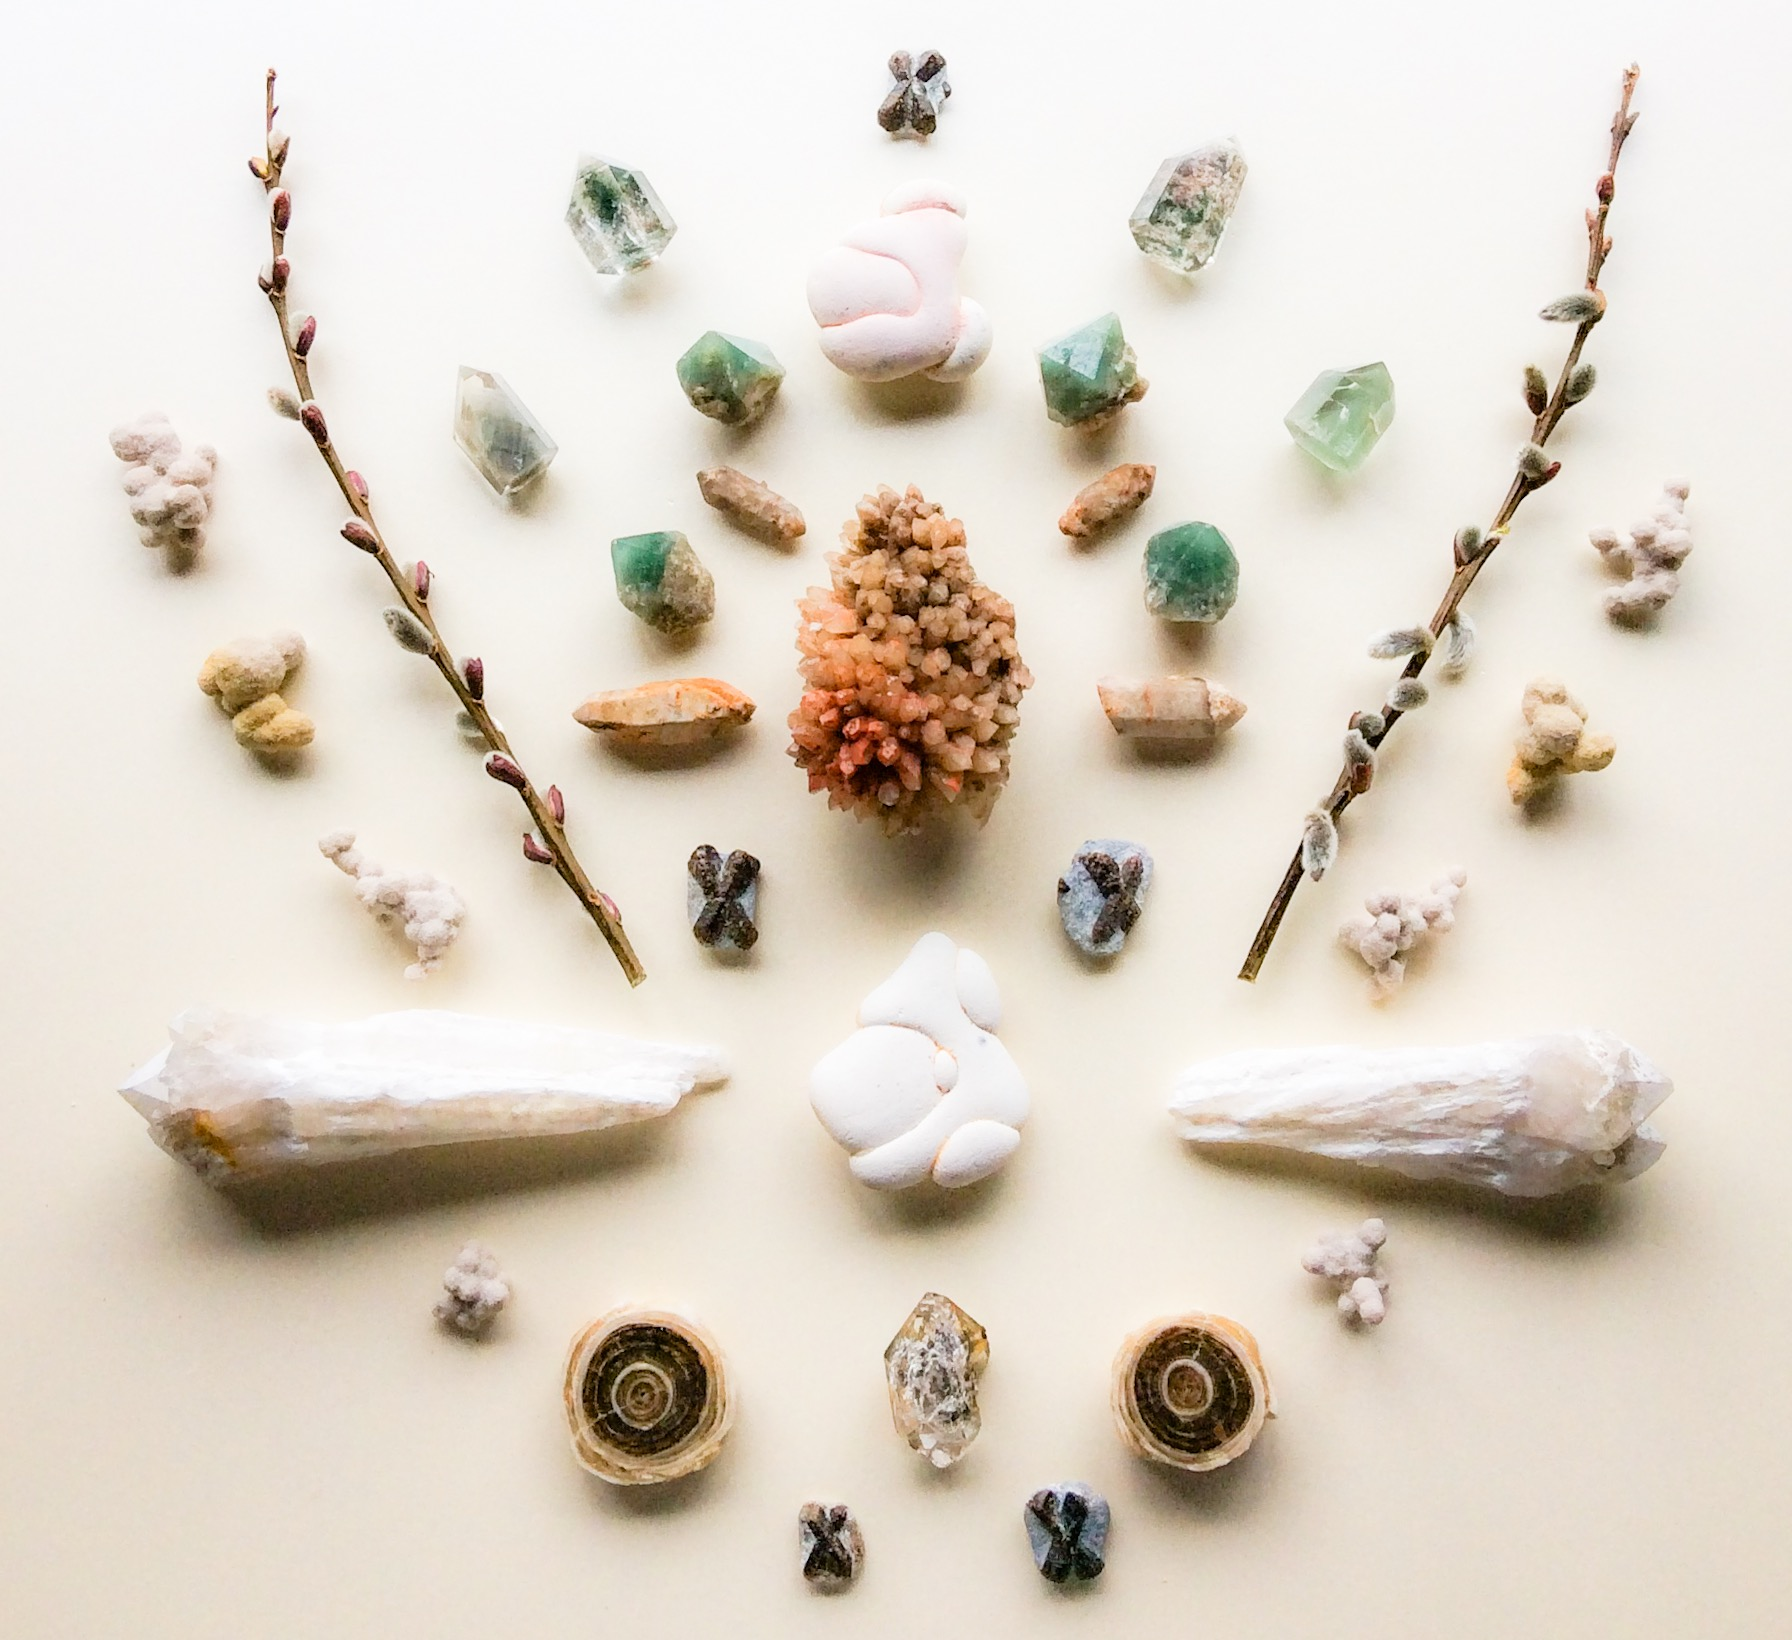 Calcite, Quartz, Green Quartz, Inclusions Quartz, Phantom Quartz, Staurolite, Gogottes - sandstone concretions, Druid White Quartz, Aragonite, Herkimer Diamond and Salix viminalis